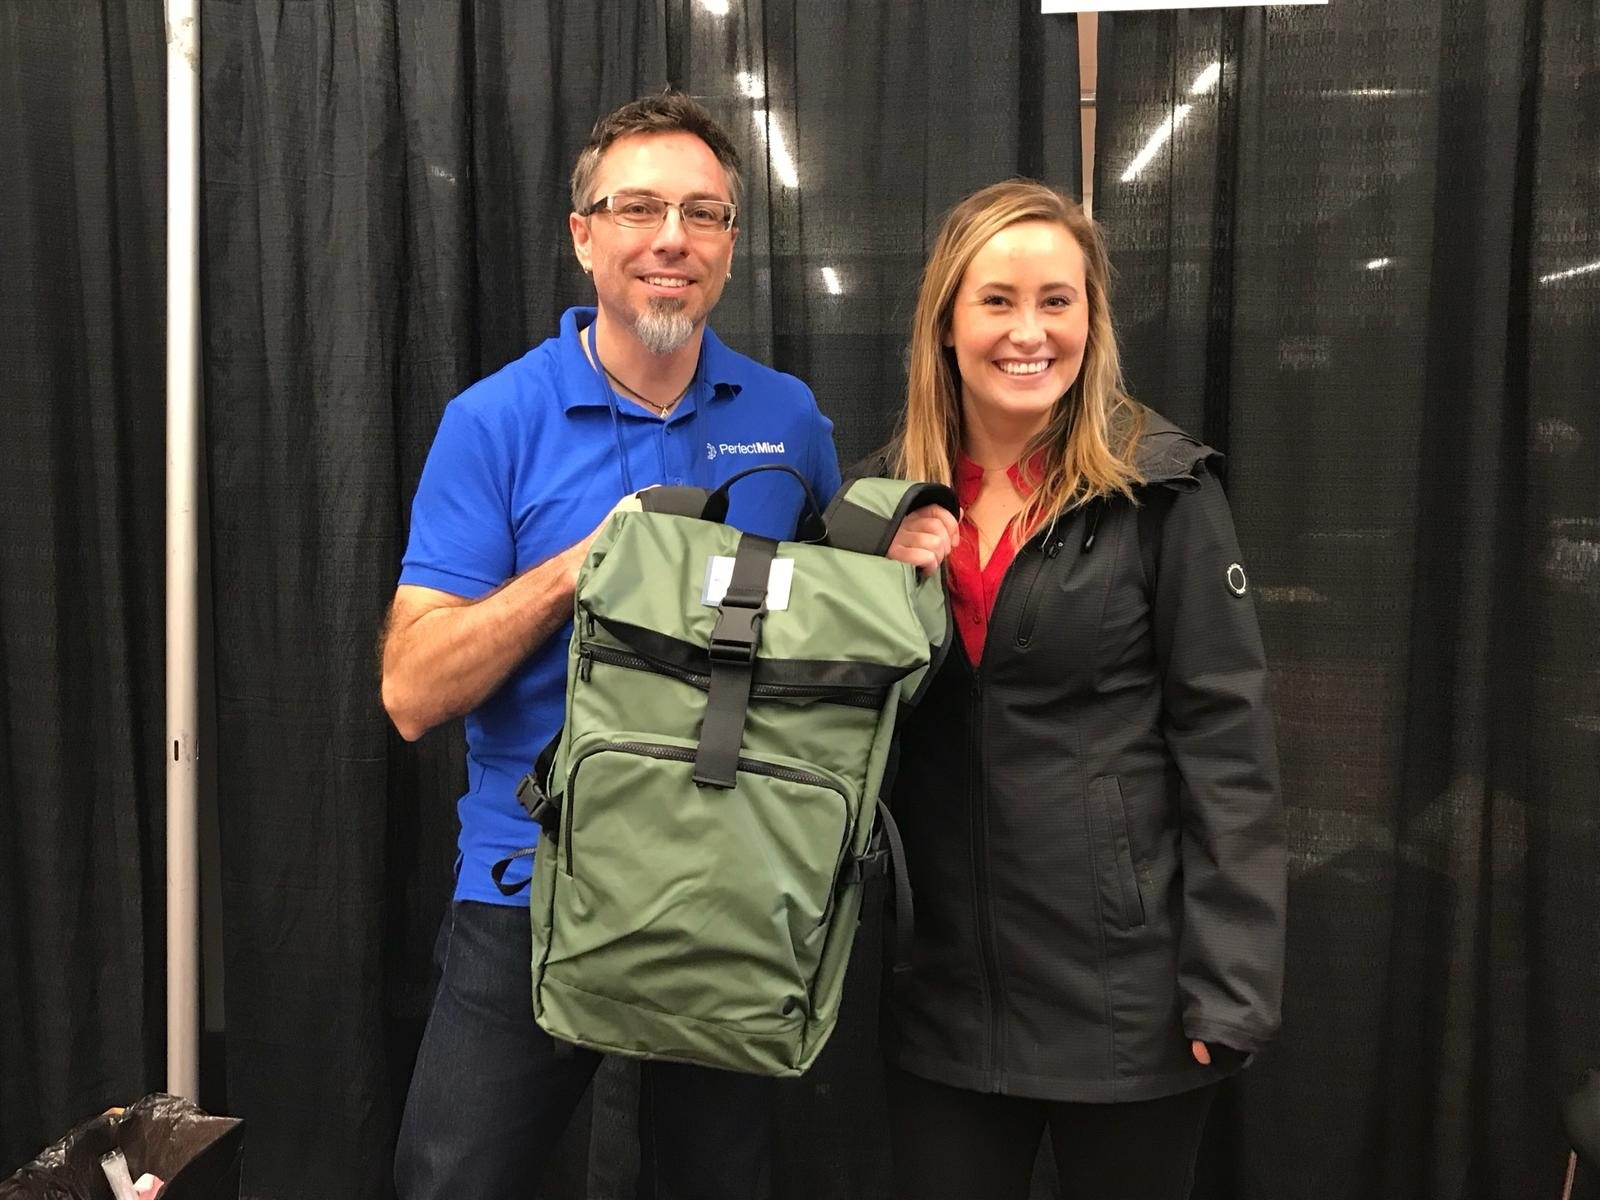 PerfectMind prize draw winner at club industry show 2018